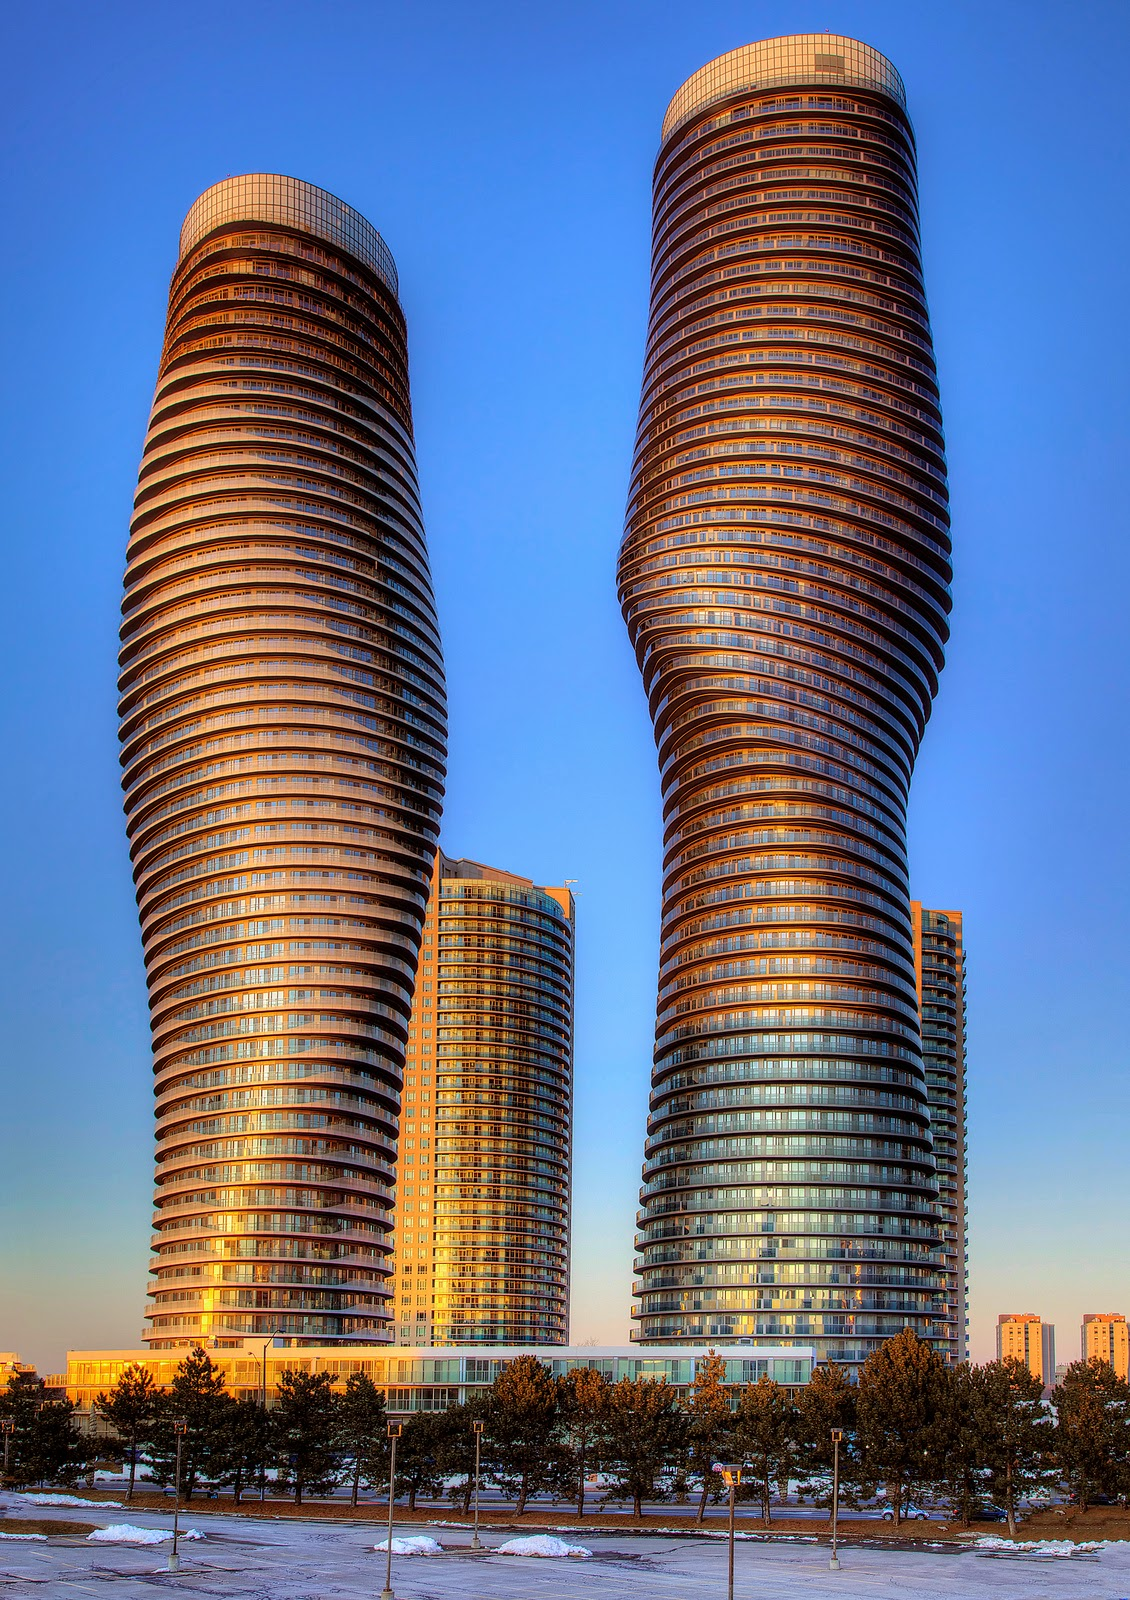 Ma Yansong, Absolute World towers 4 & 5 aka Marilyn Monroe Towers.